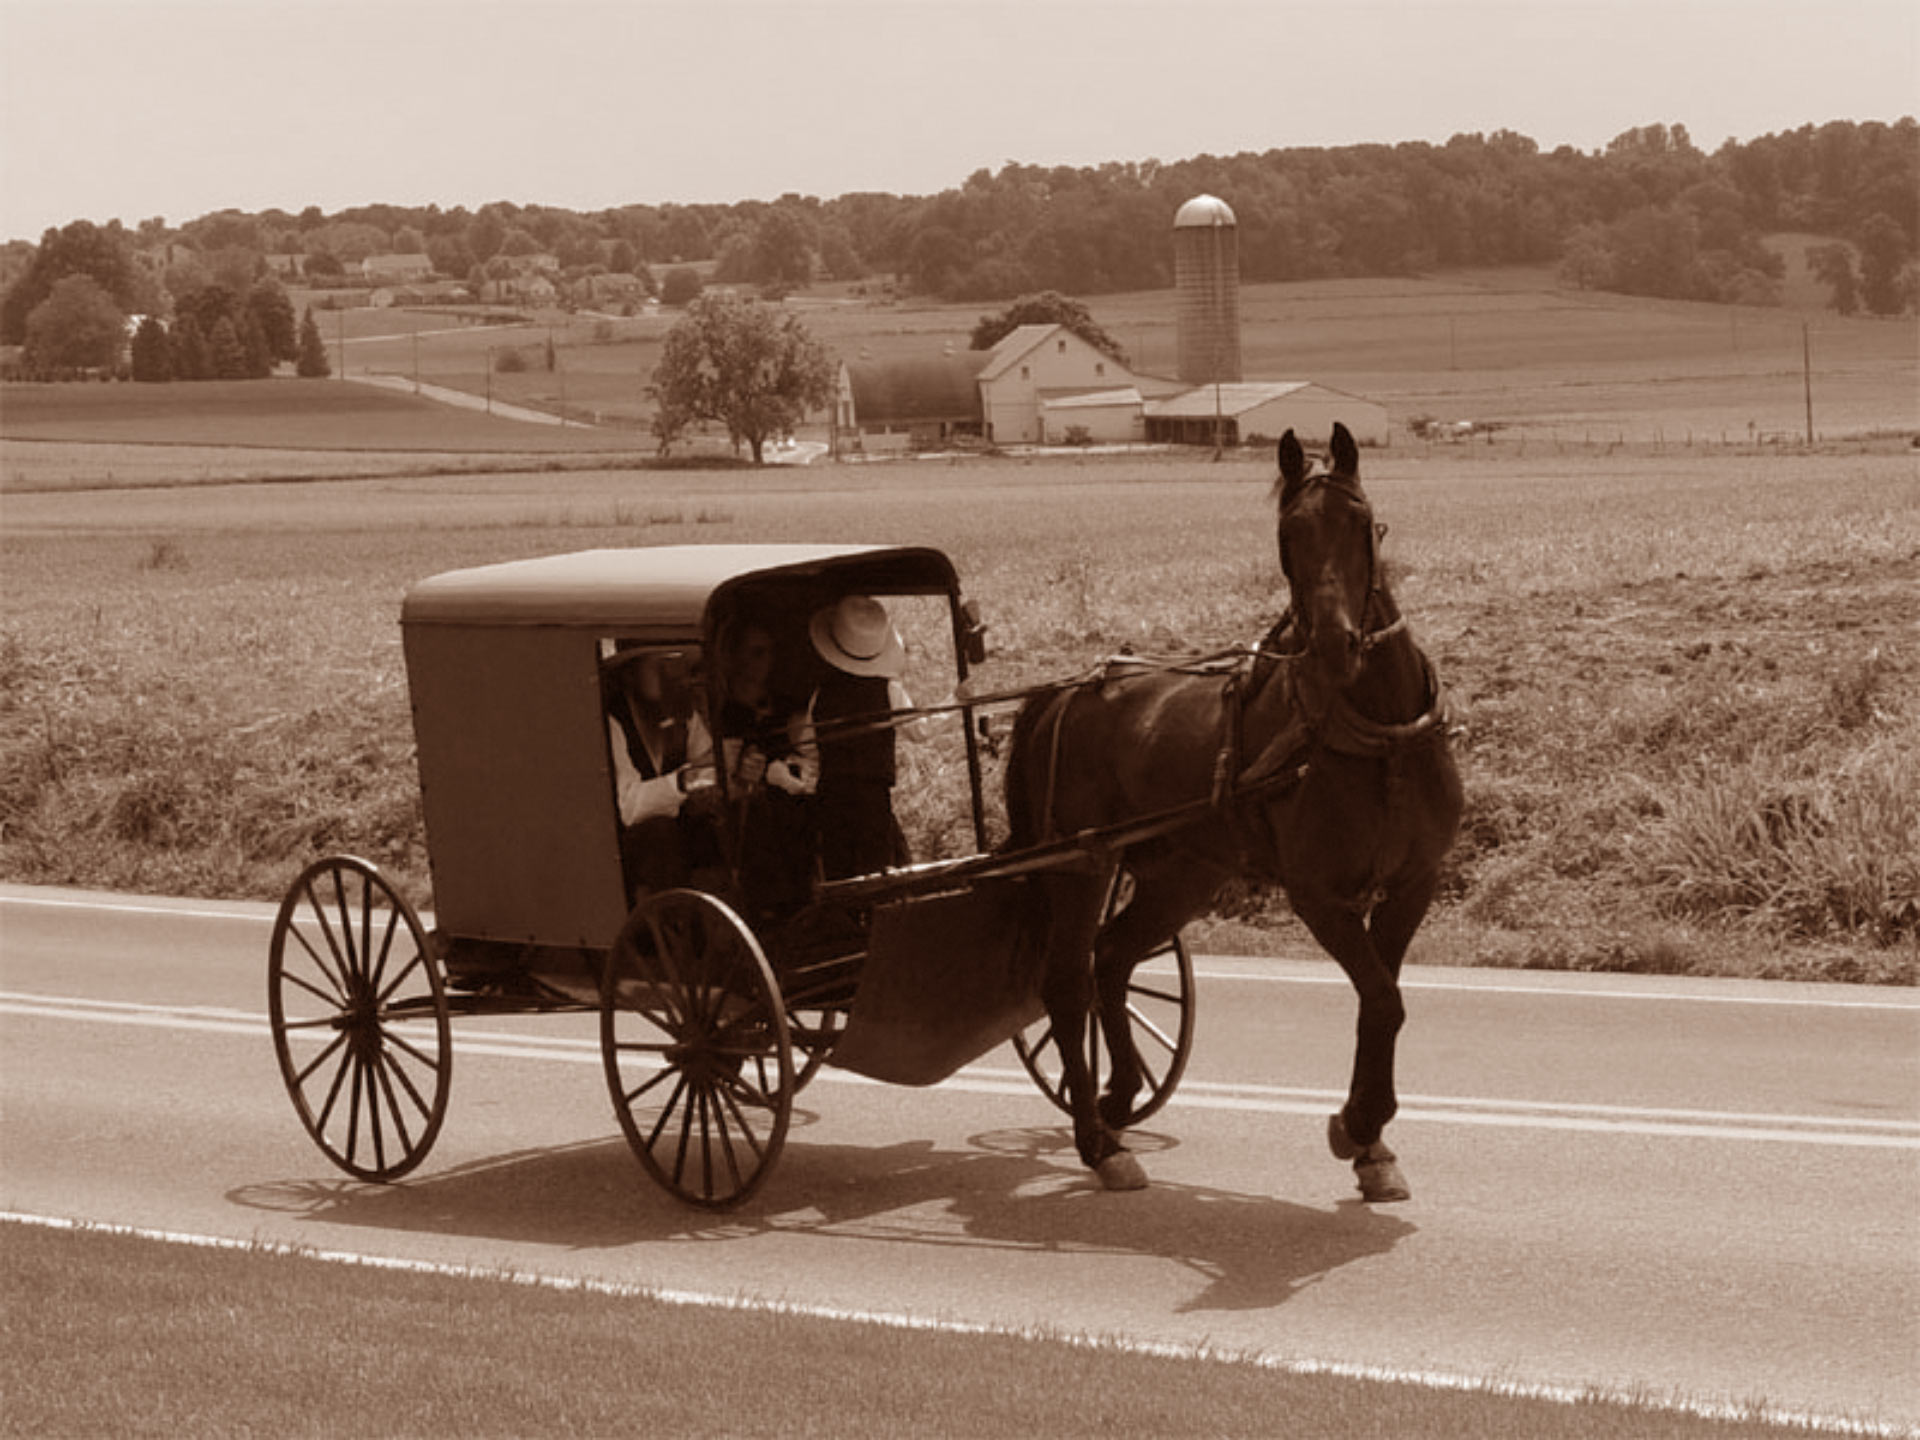 Mutation Found in Amish Said to Make Some Live 10 Years Longer